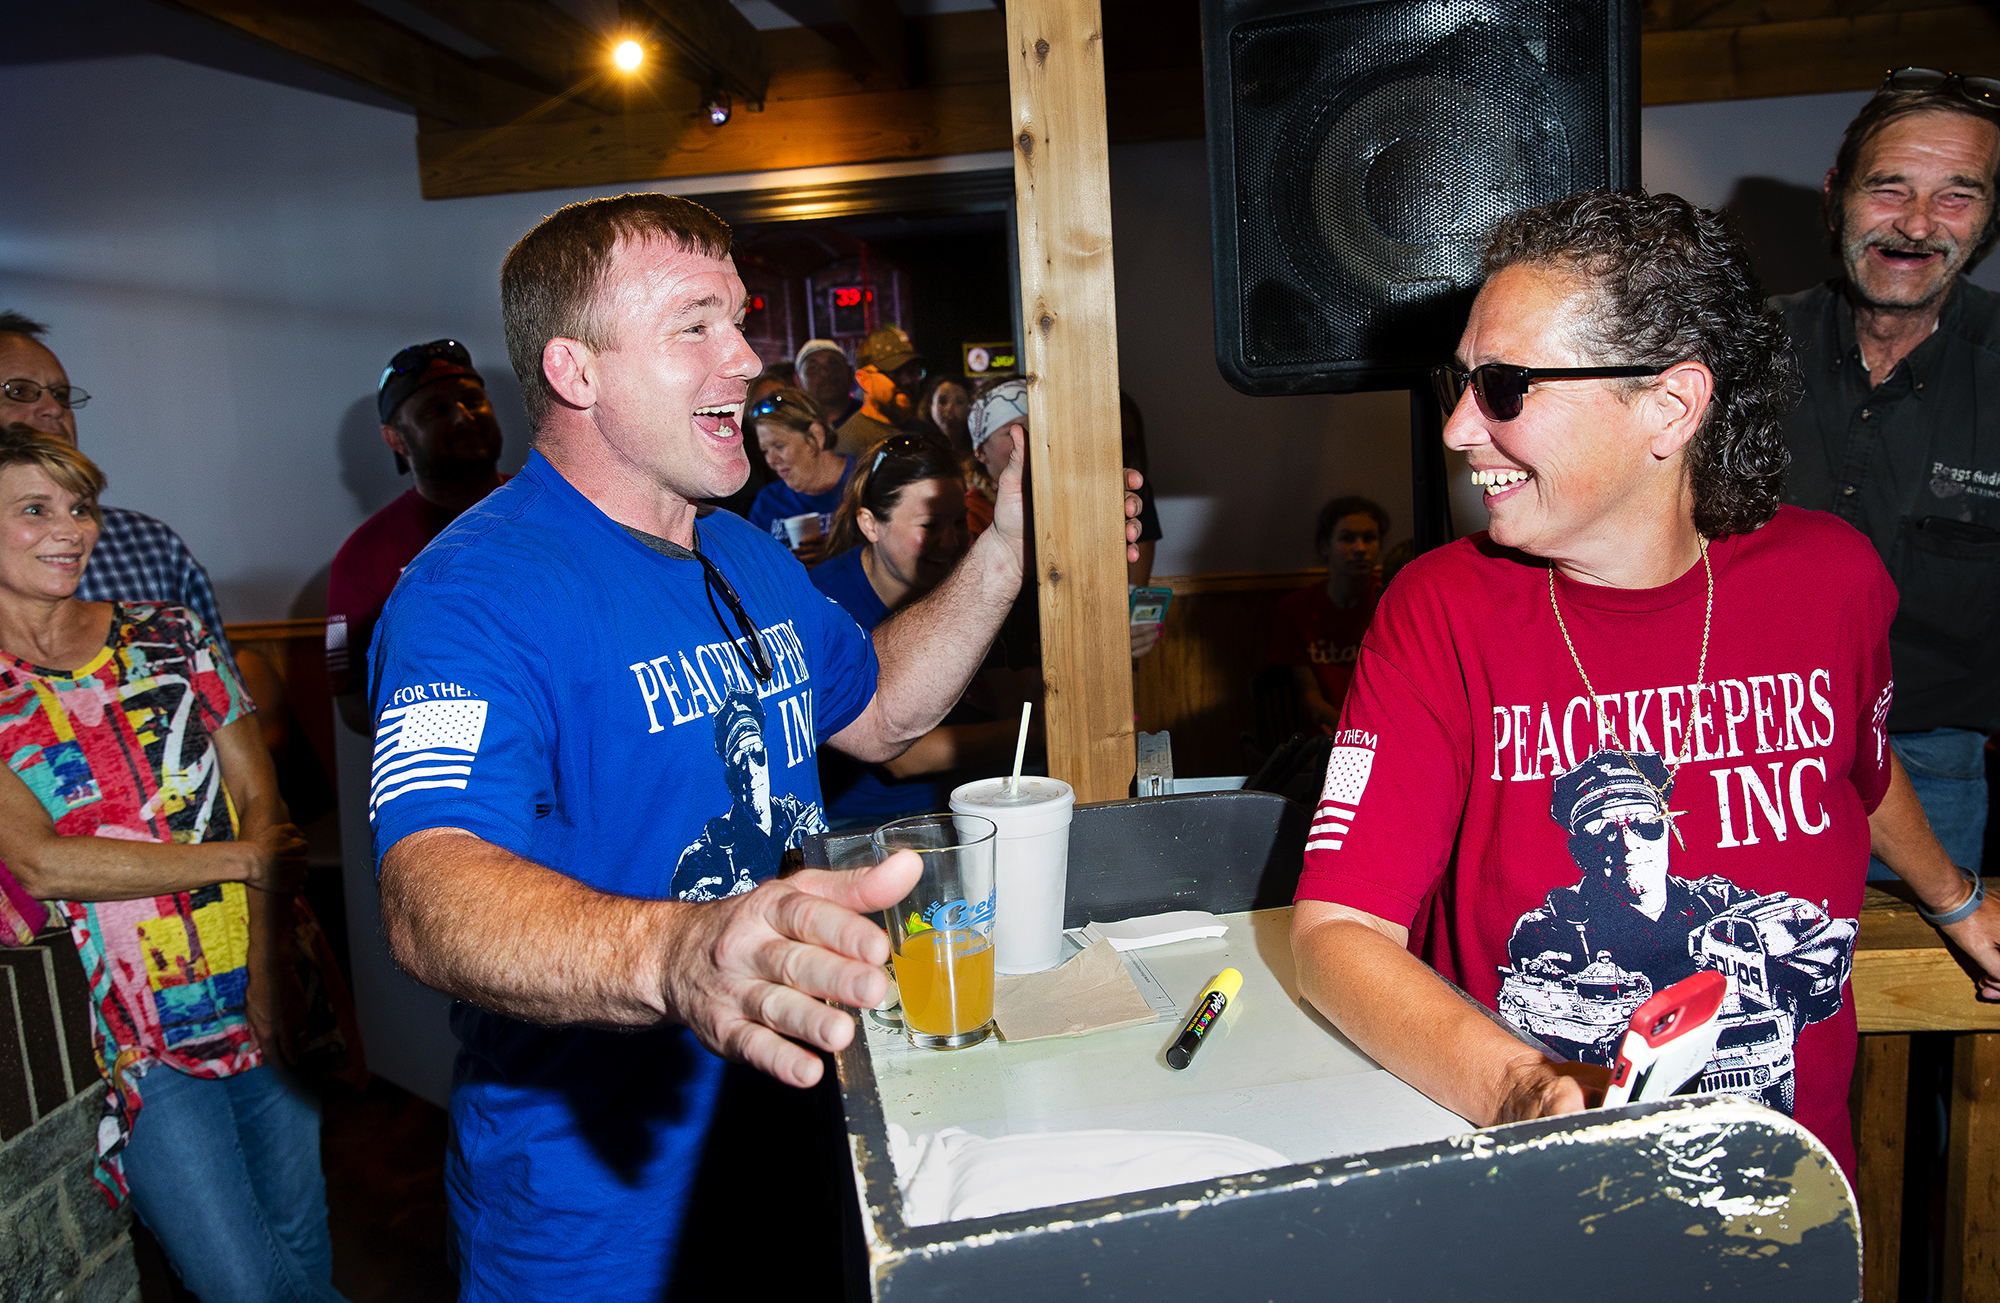 Former UFC welterweight champion and Hillsboro native Matt Hughes jokes with the crowd at The Creek Pub & Grill in Chatham during a stop on the 2018 Peacekeepers Ride Sunday, July 22, 2018. Hughes was the ride's honorary grand marshall. [Ted Schurter/The State Journal-Register]